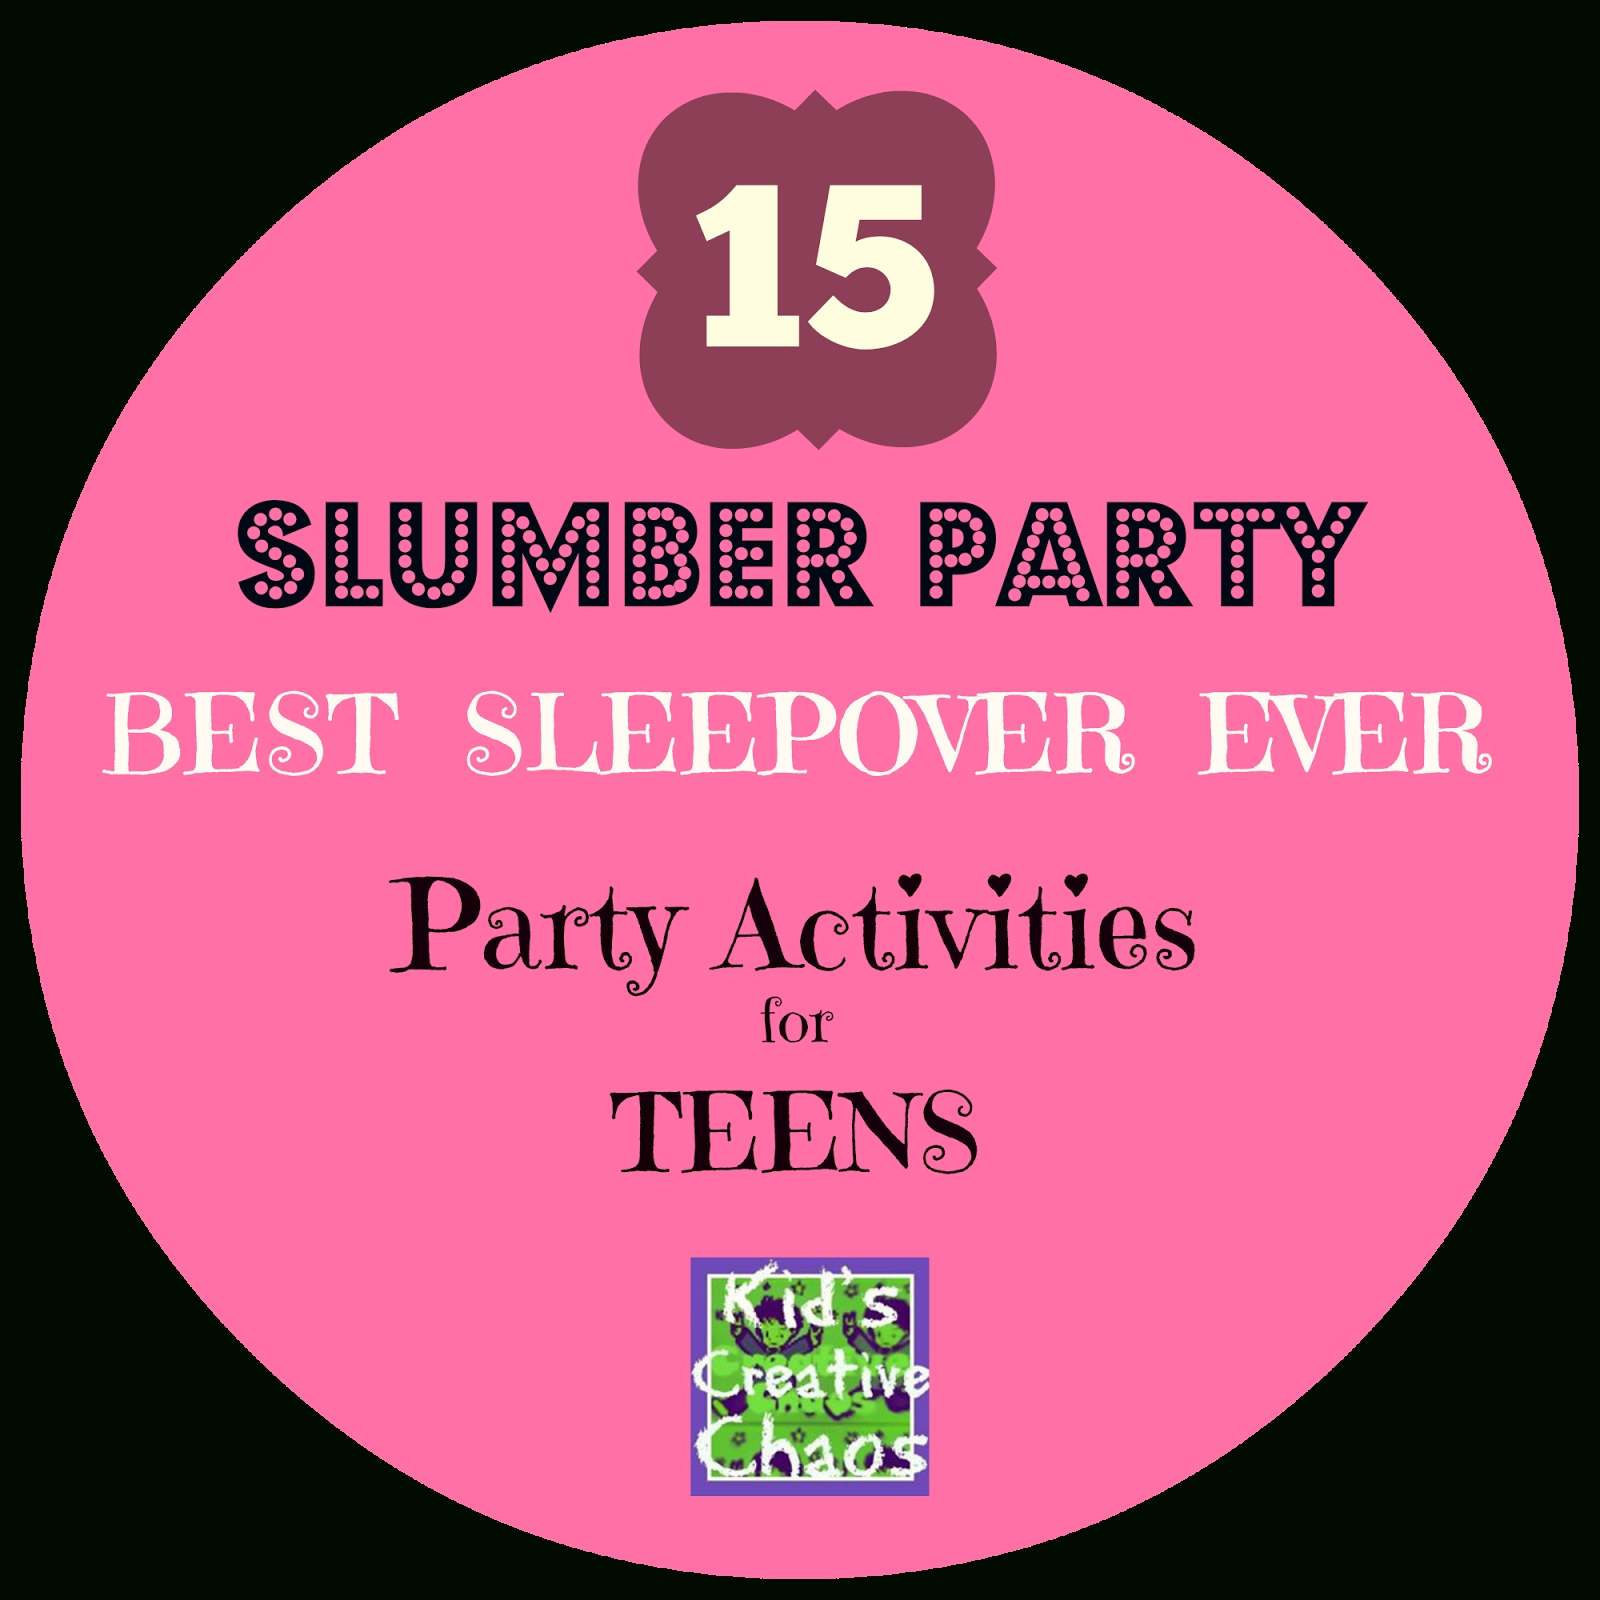 10 Fantastic Fun Ideas For A Sleepover 15 slumber party games and activities for teen girls best sleepover 1